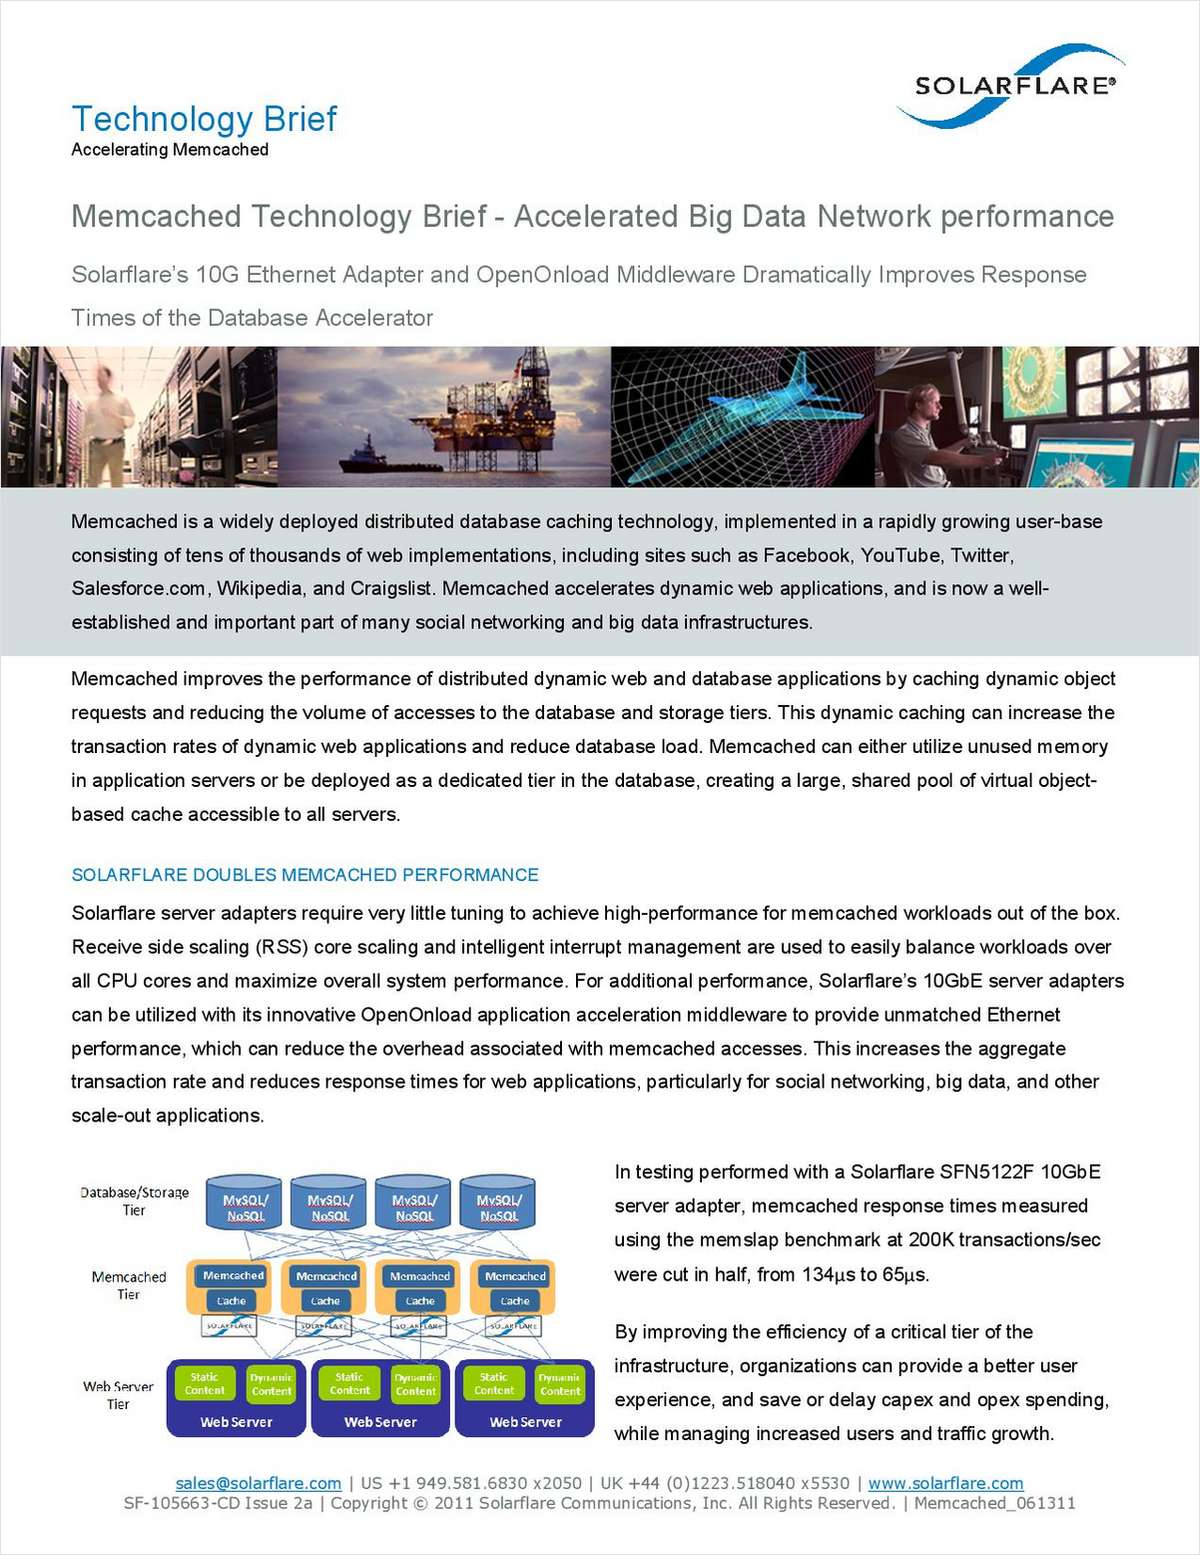 Memcached Technology Brief - Accelerating Web 2.0 Application Performance